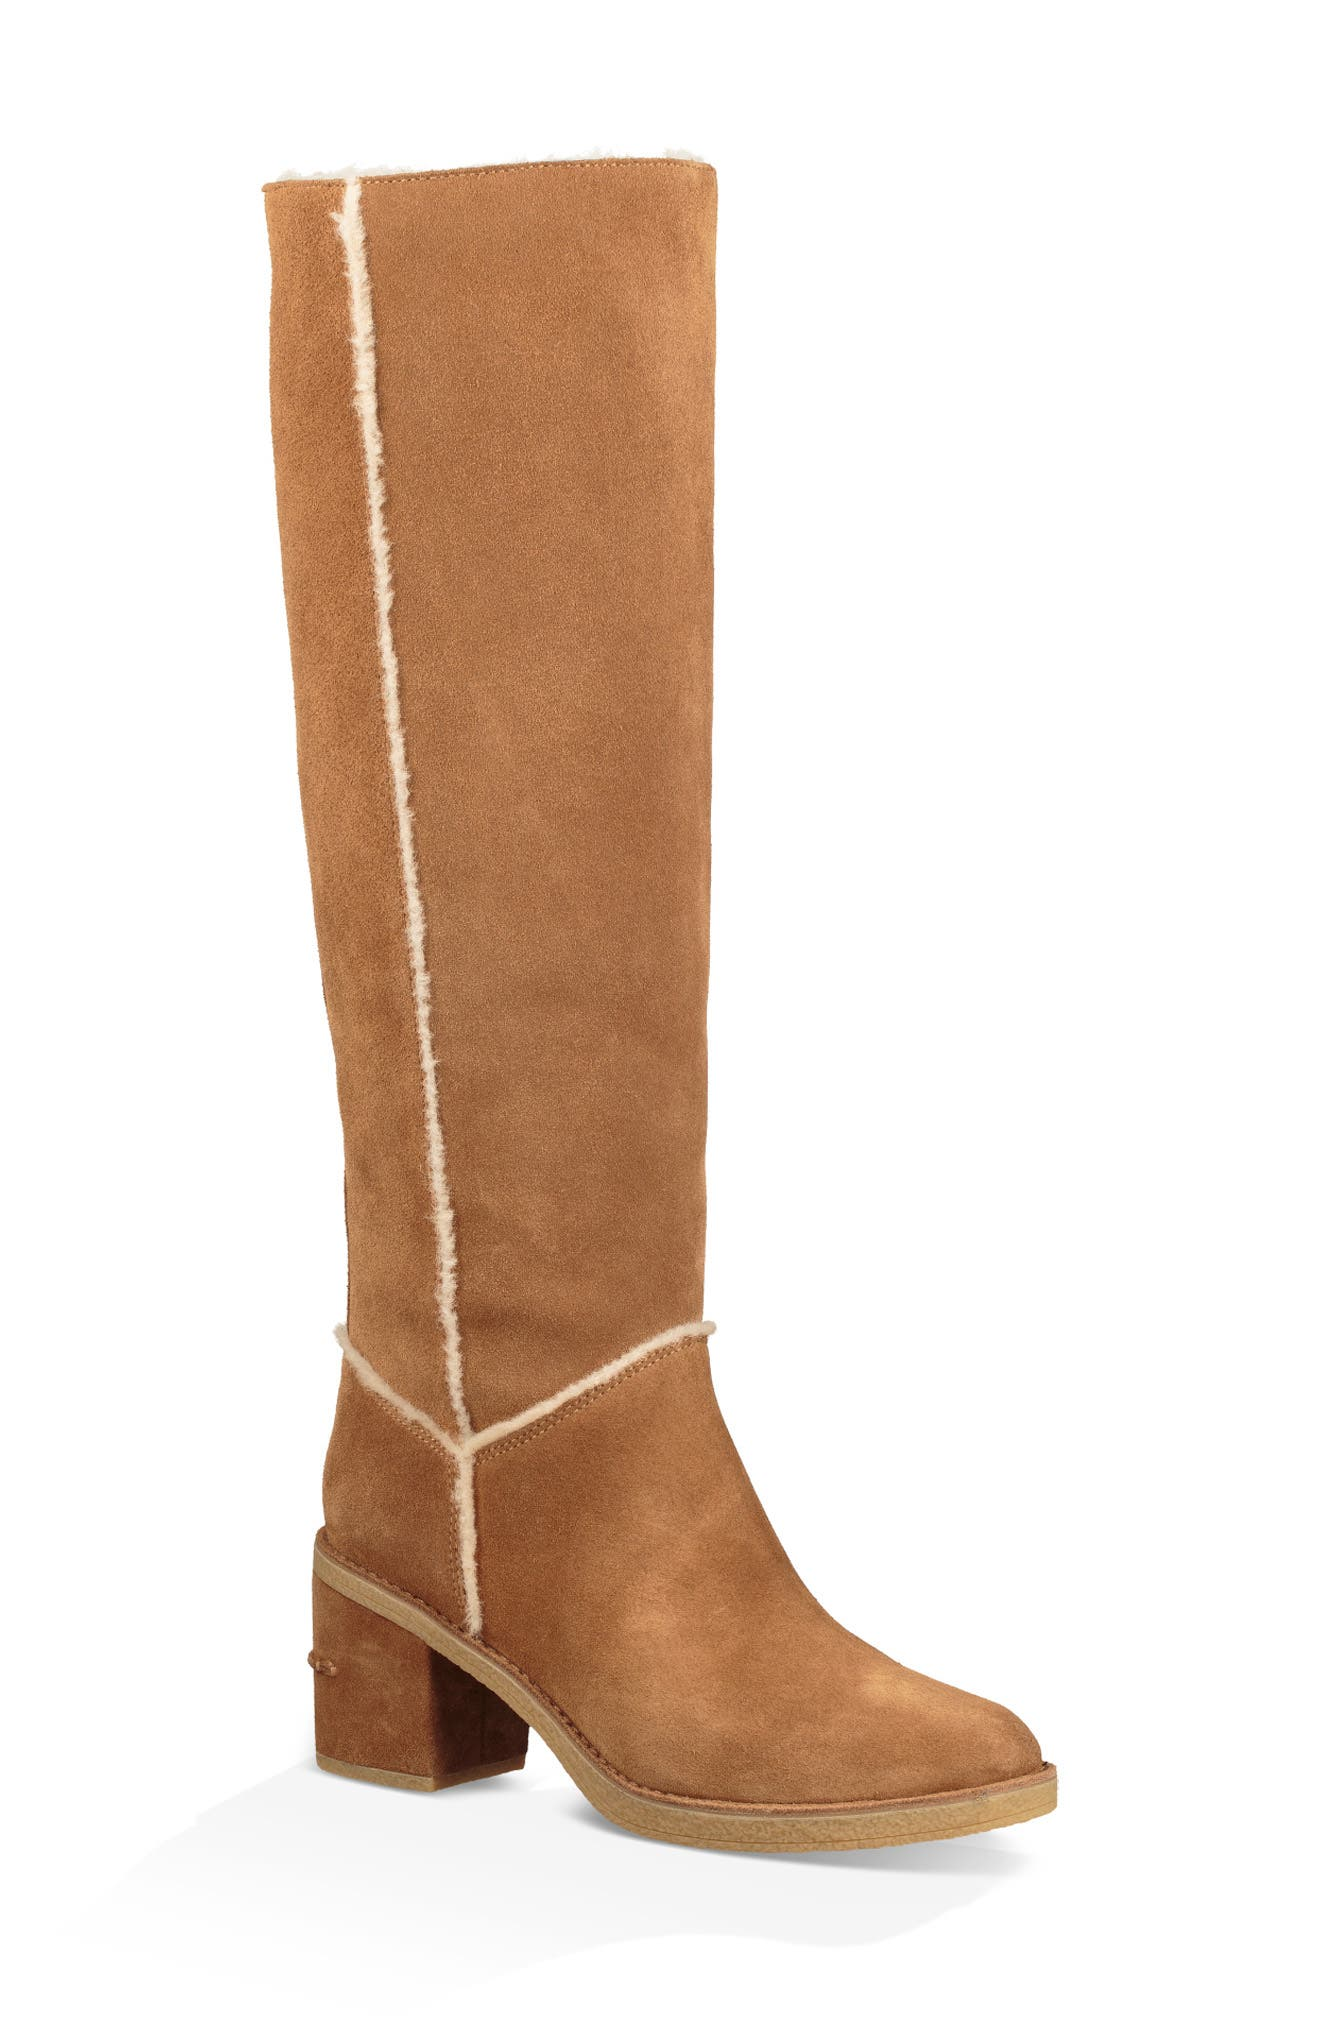 Kasen II Knee High Boot,                             Main thumbnail 1, color,                             CHESTNUT SUEDE